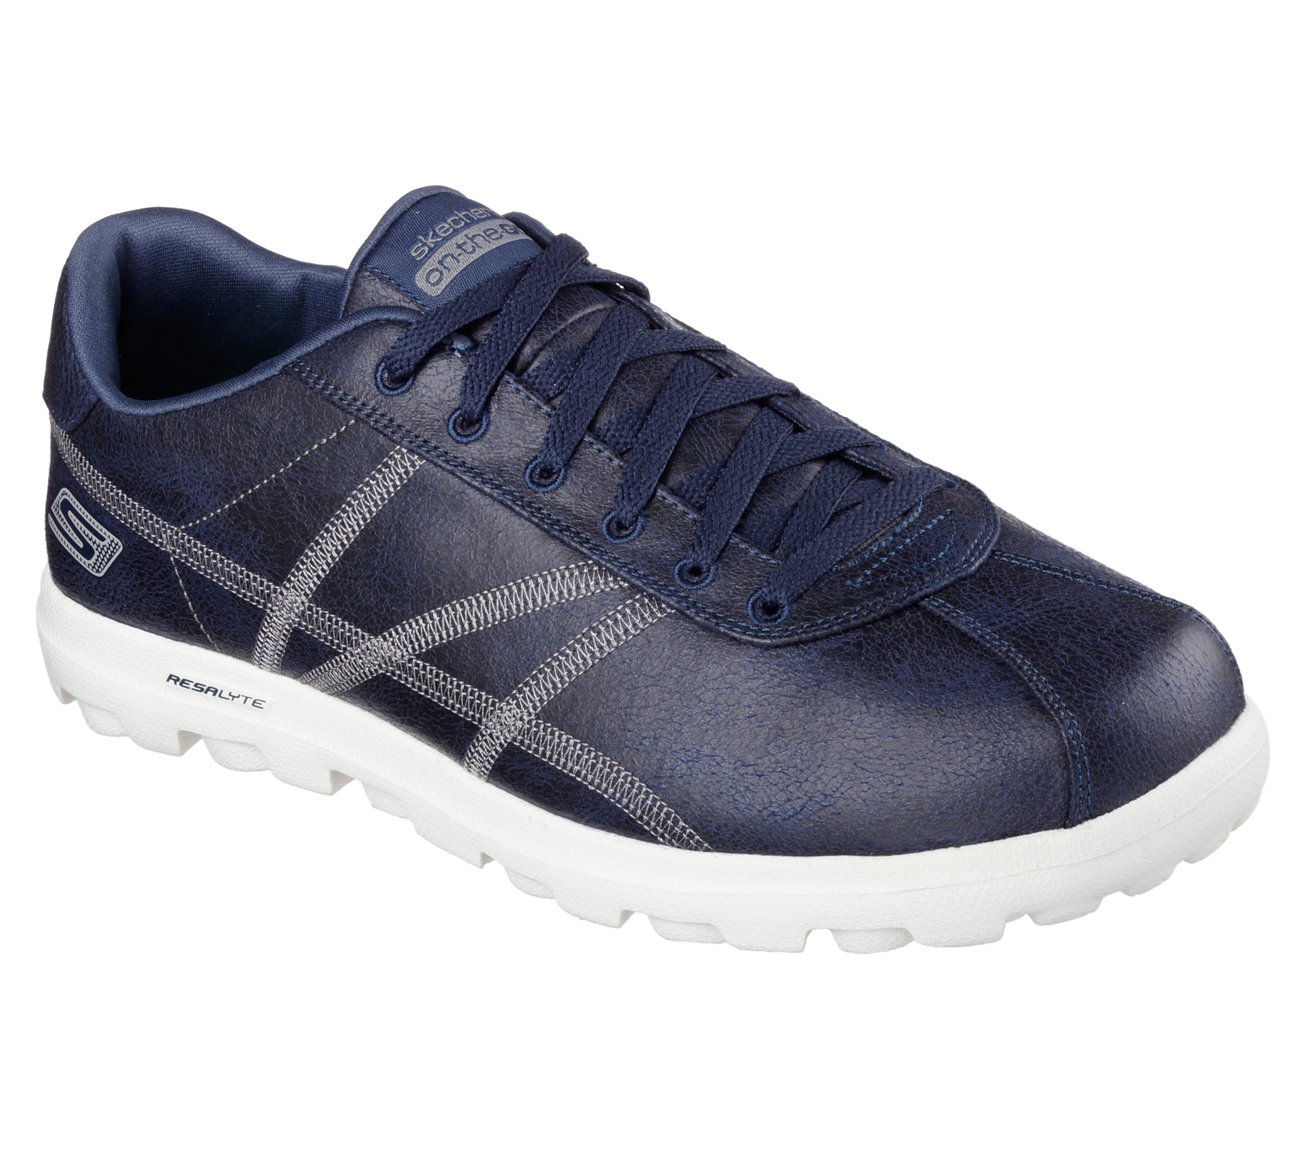 buy skechers skechers on the go refined skechers performance shoes only. Black Bedroom Furniture Sets. Home Design Ideas